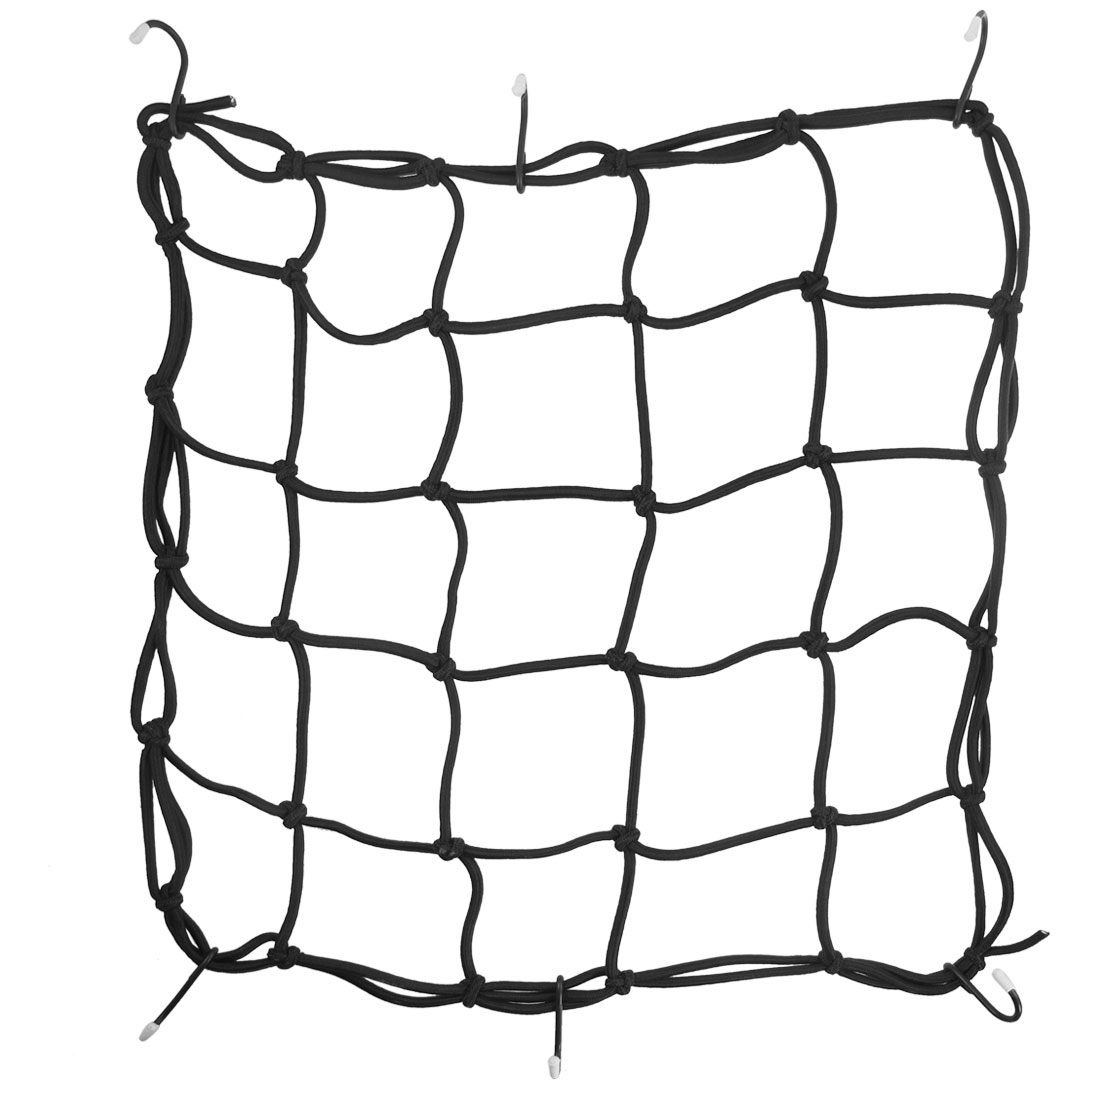 Black 6 Hooks Design Motorcycle Bicycle Luggage Package Cargo Net